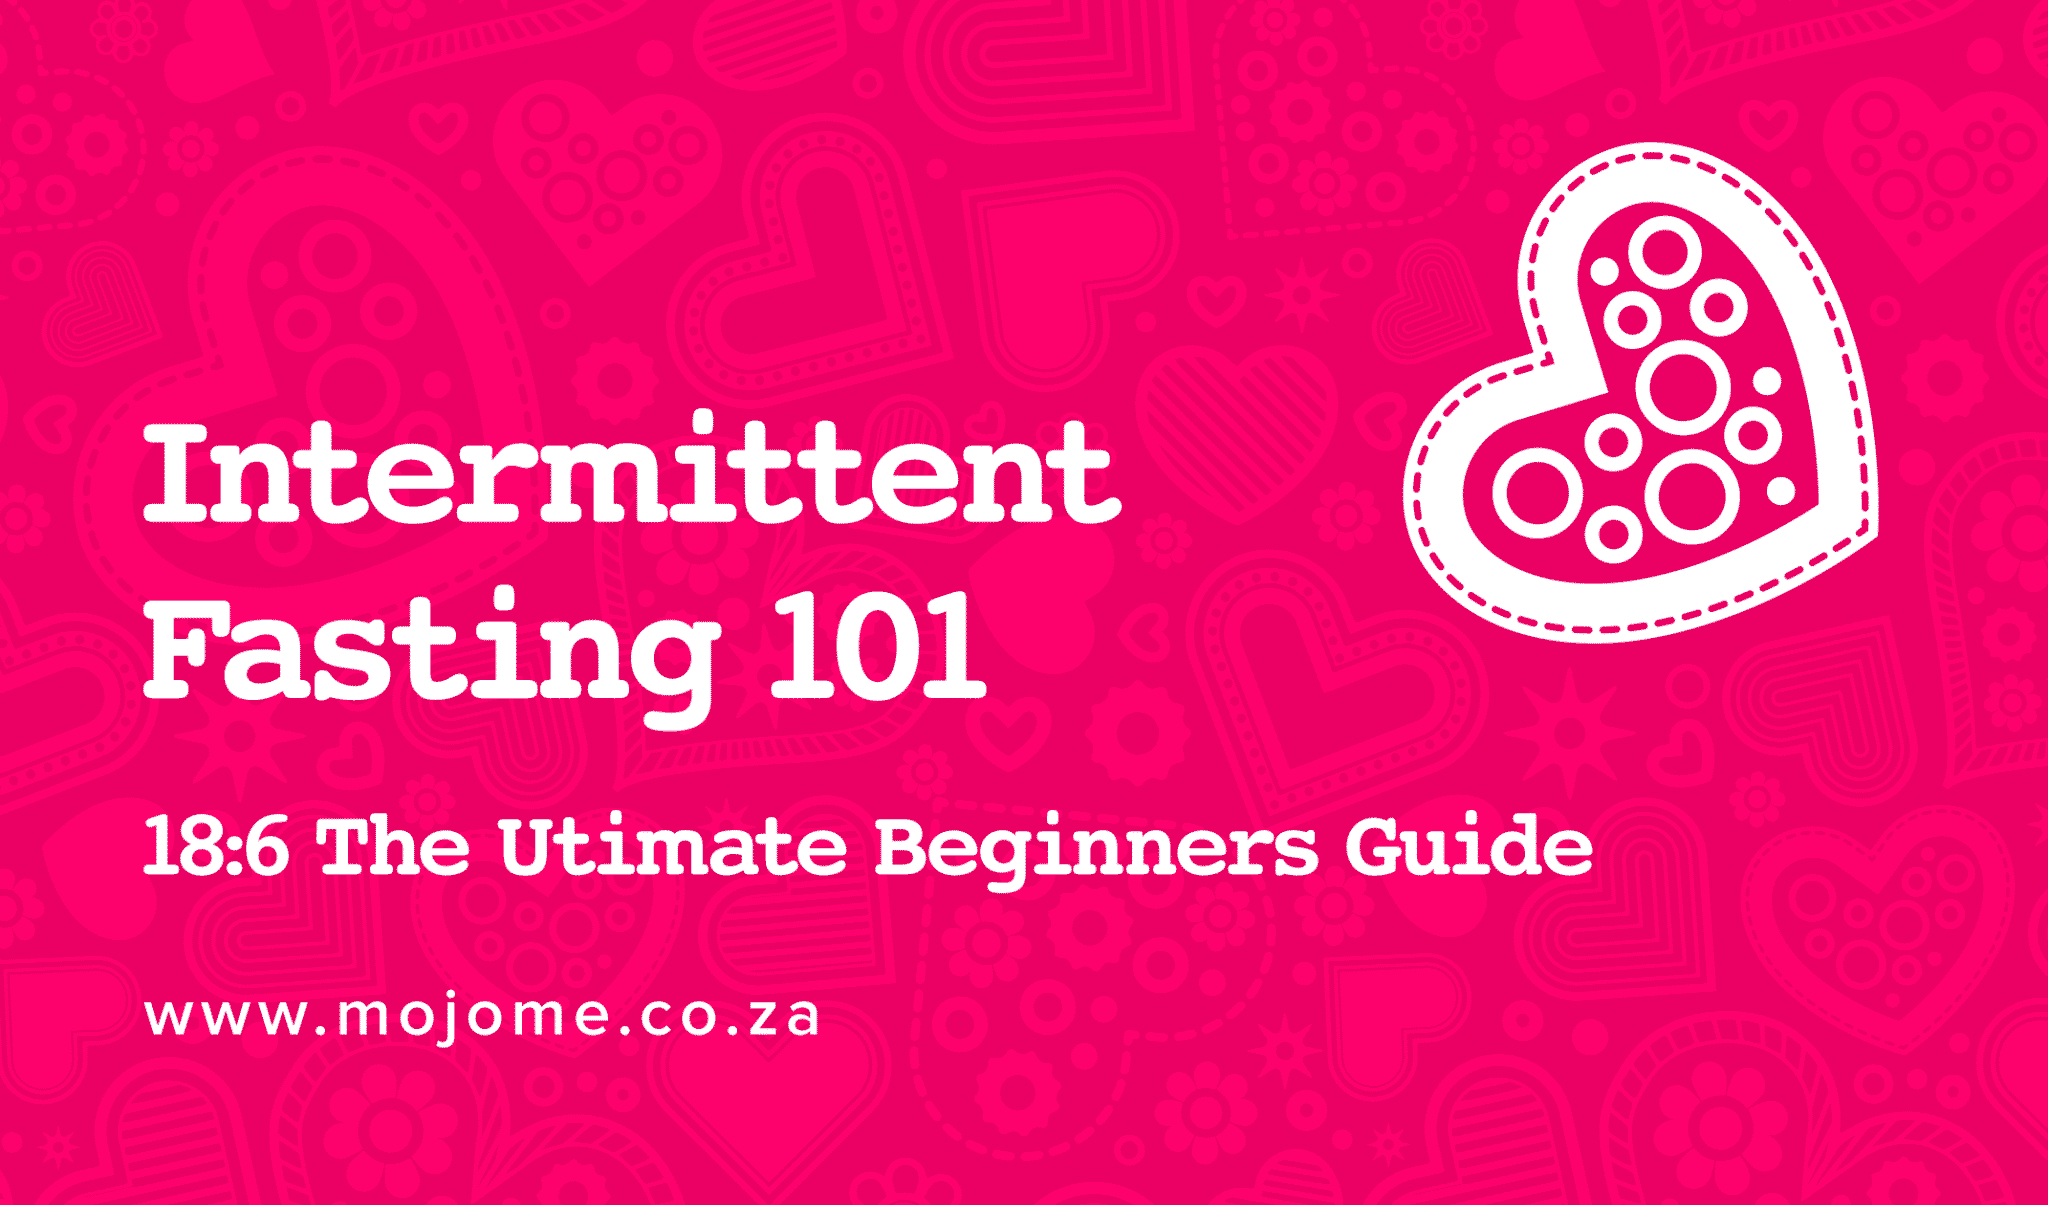 Intermittent Fasting IF Ultimate Beginners Guide